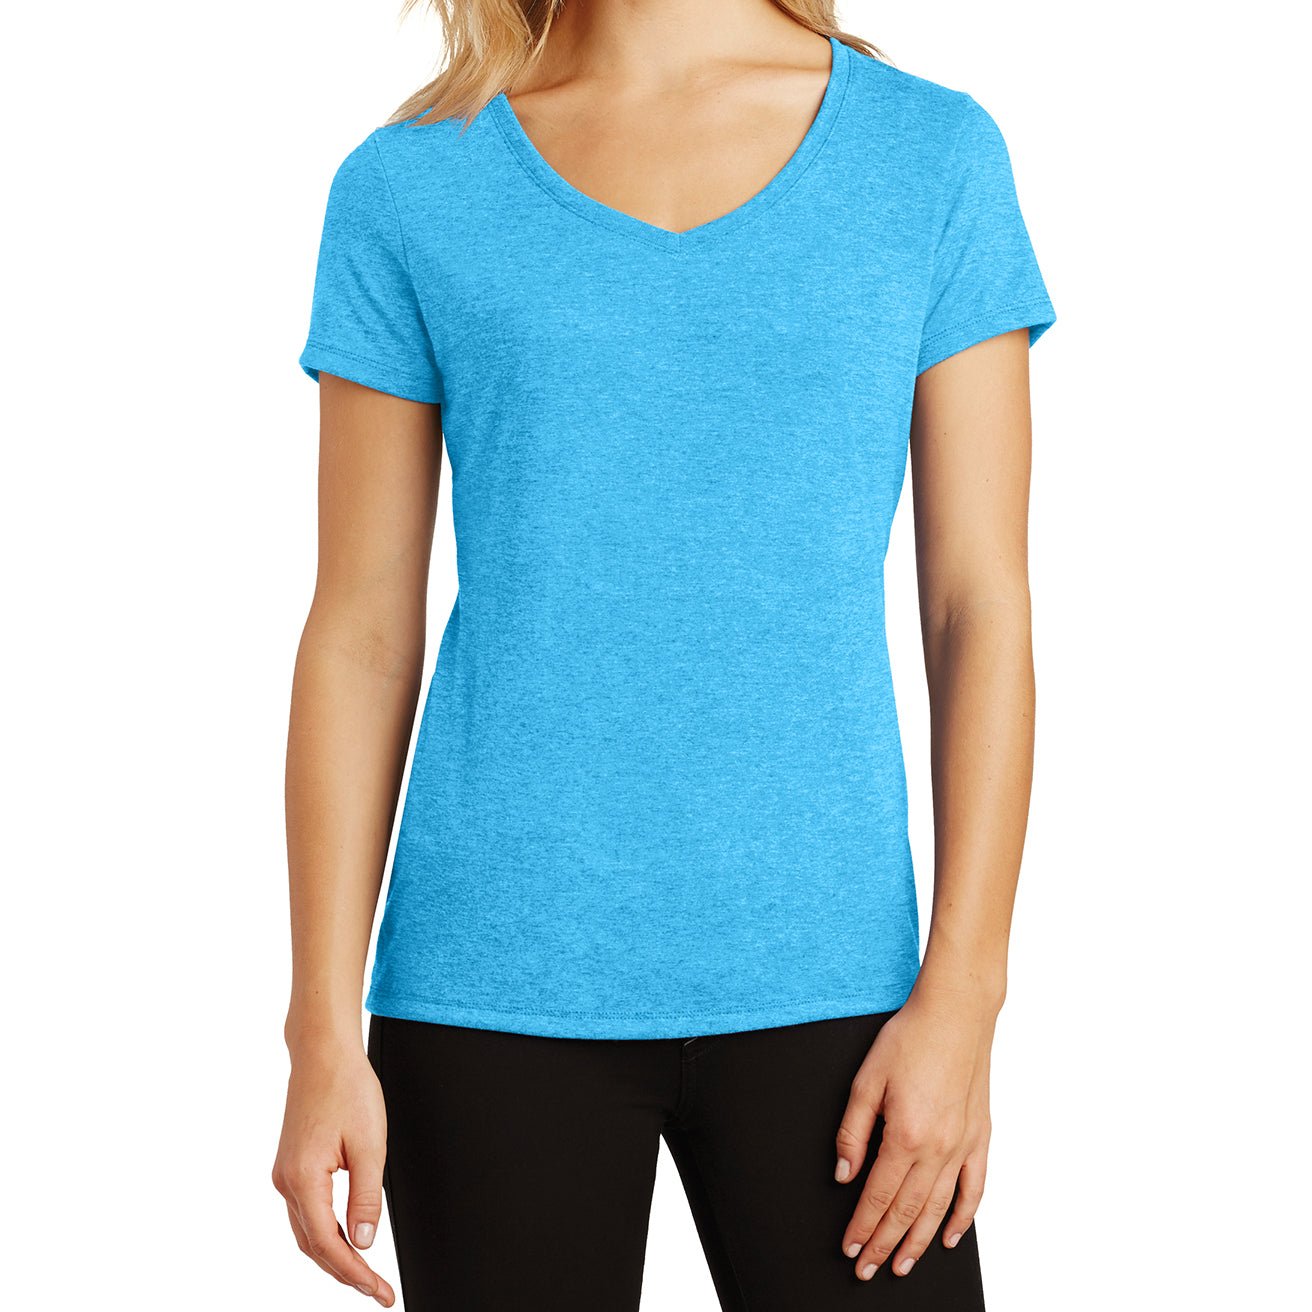 Women's Perfect Tri V-Neck Tee - Turquoise Frost - Front